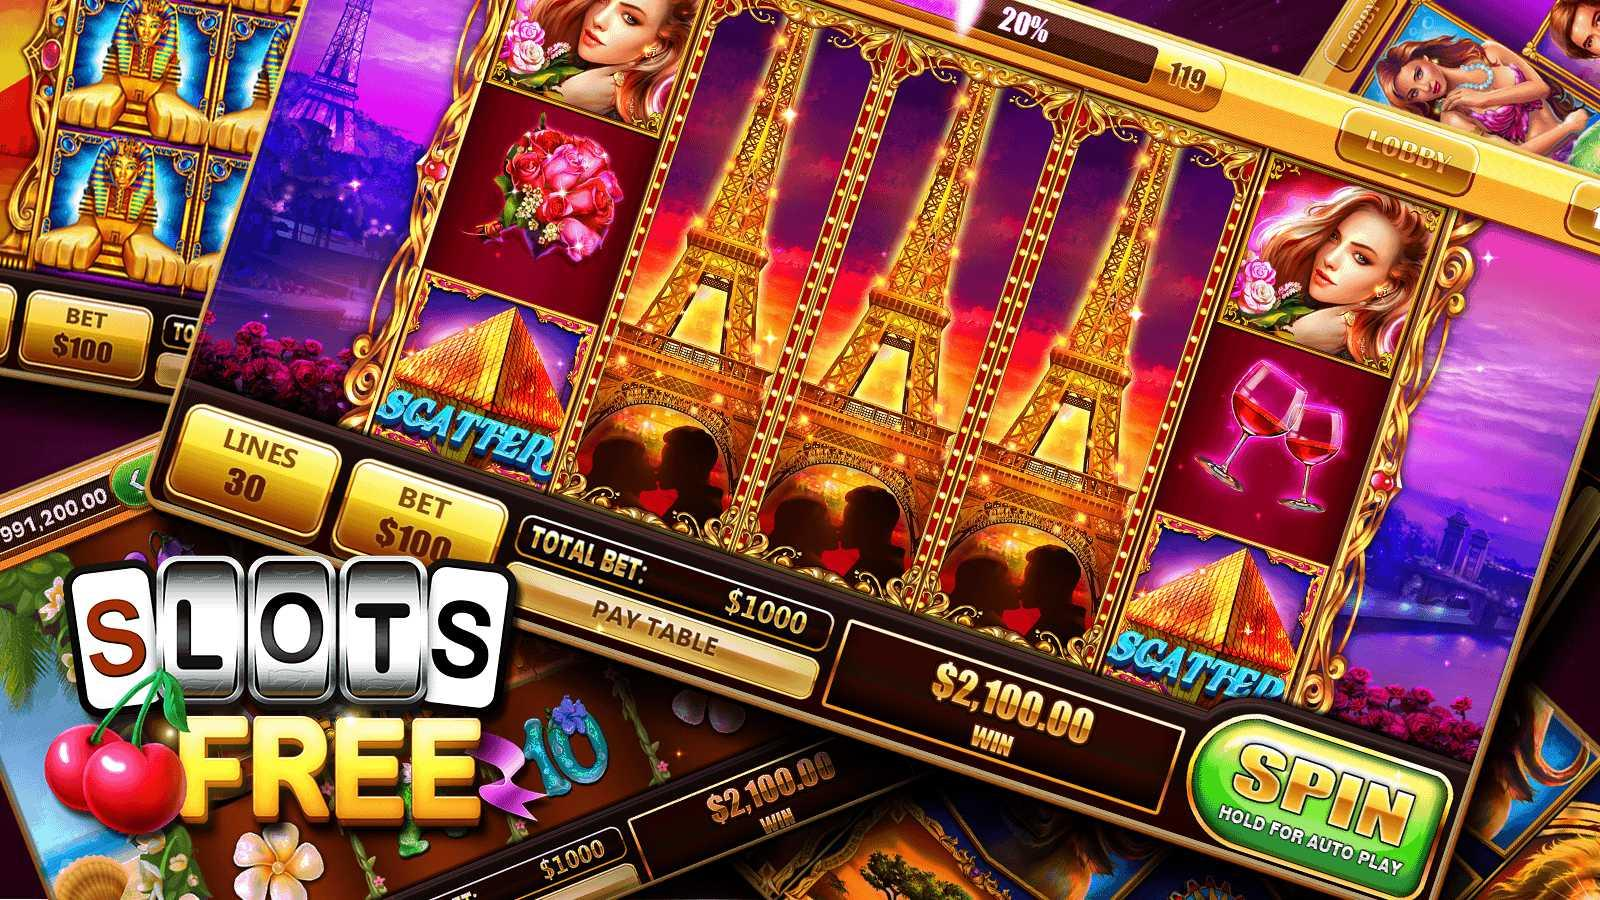 Free Slots in Regions Where Online Gambling is Illegal